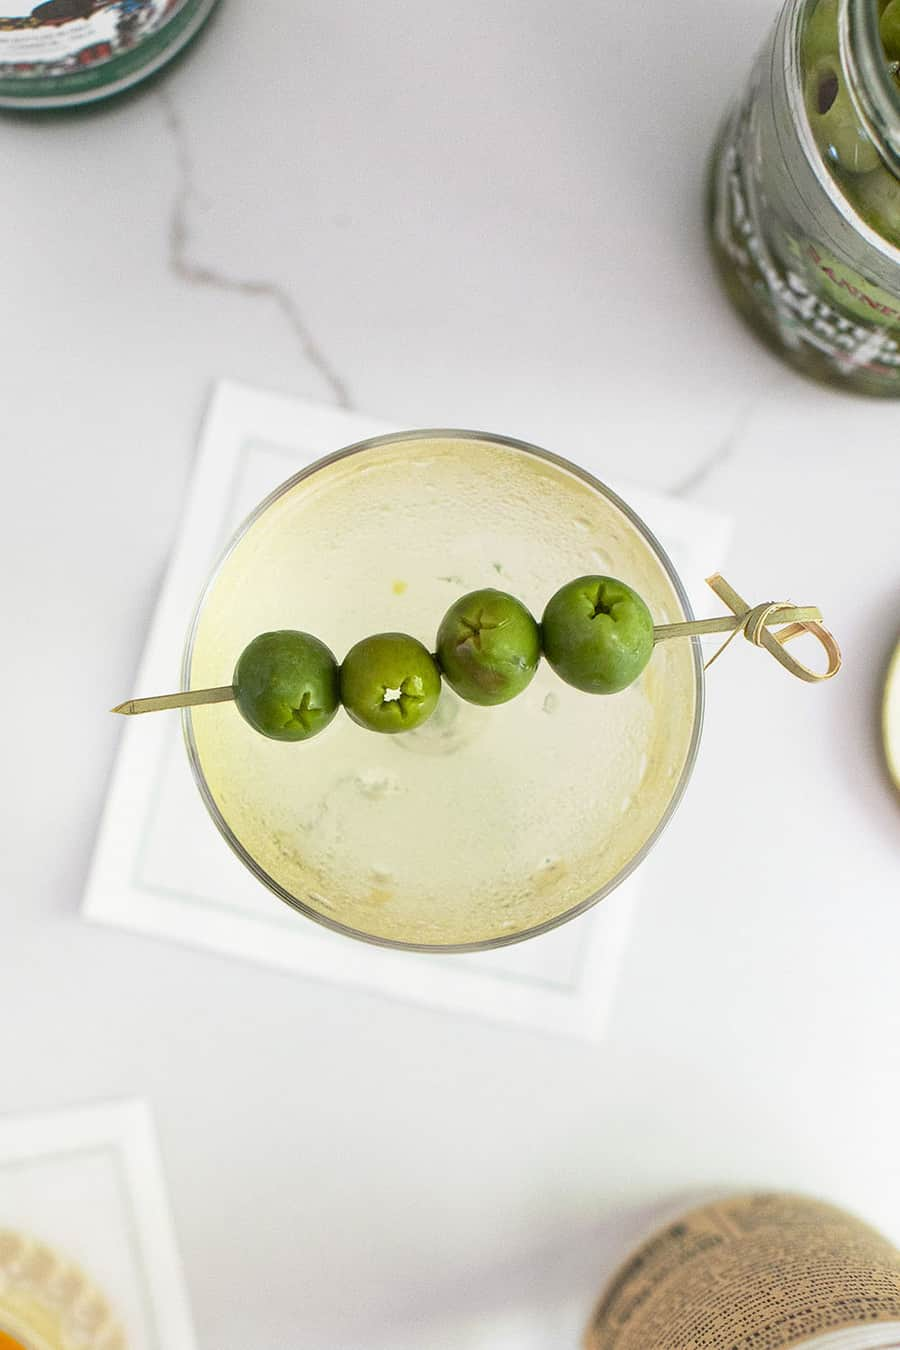 Dirty martini recipe with olives on skewer